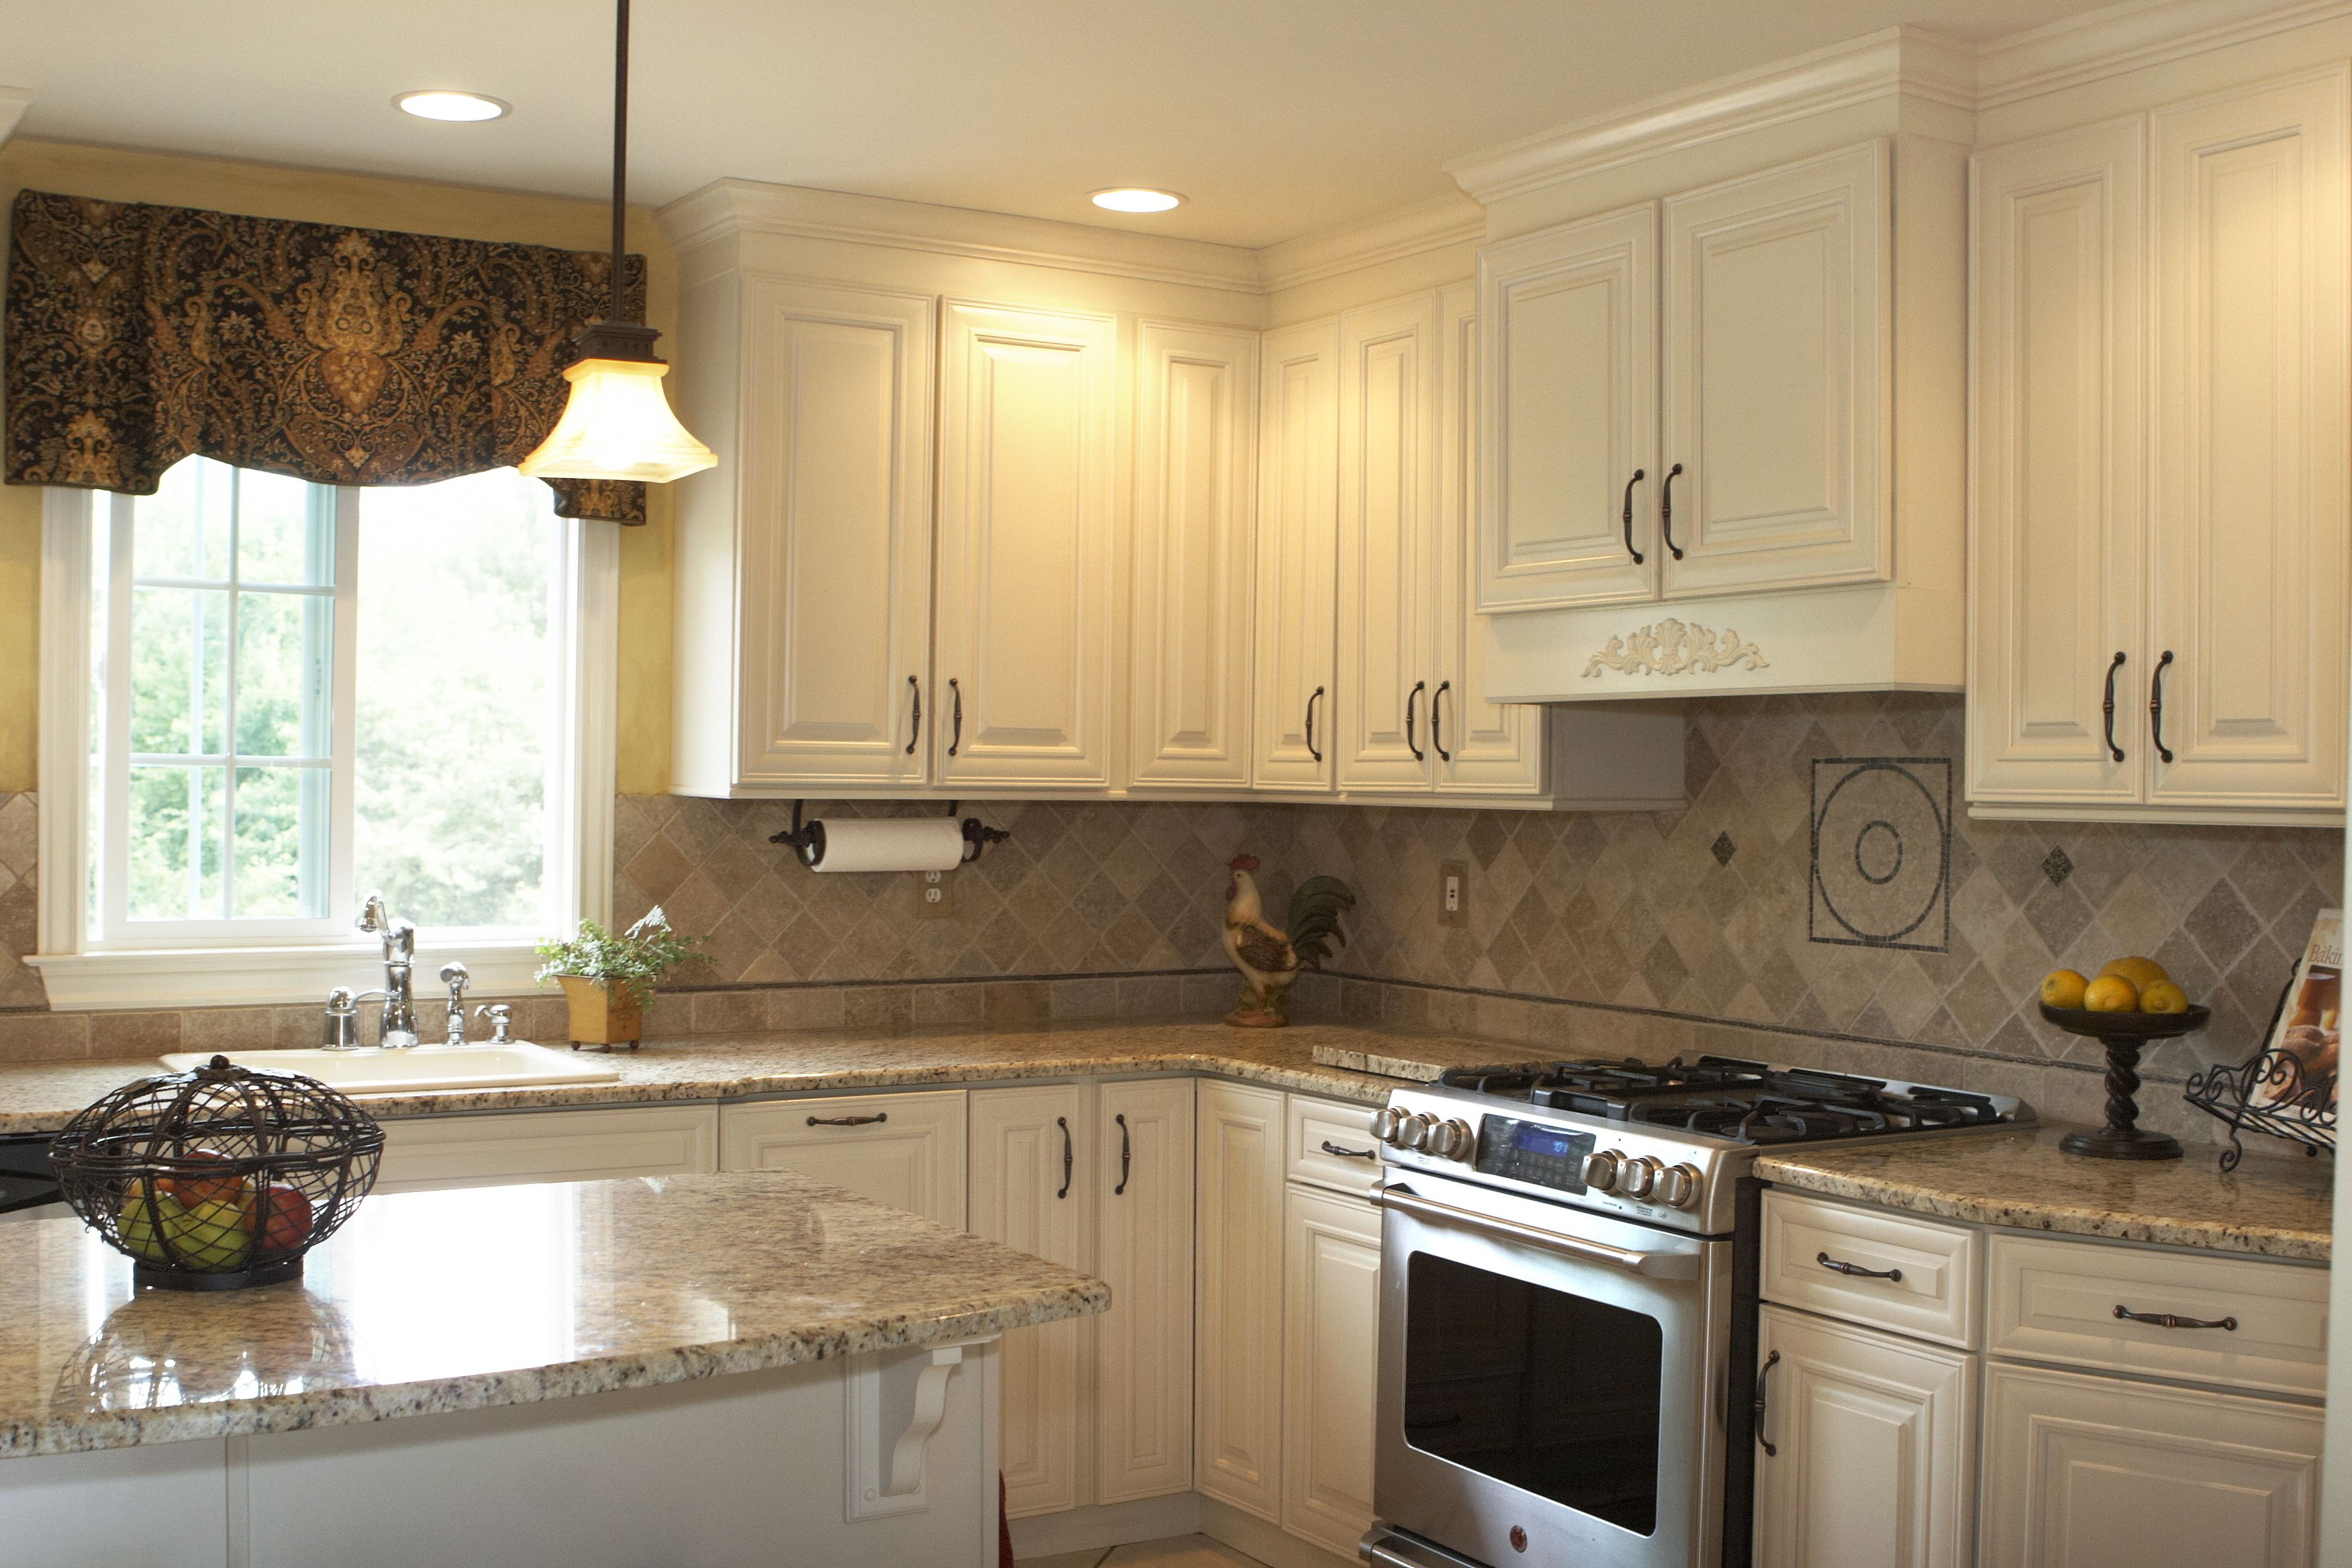 Applying 16 Bright Kitchen Paint Colors: French Country White Cabinets Brighten Up My Favorite